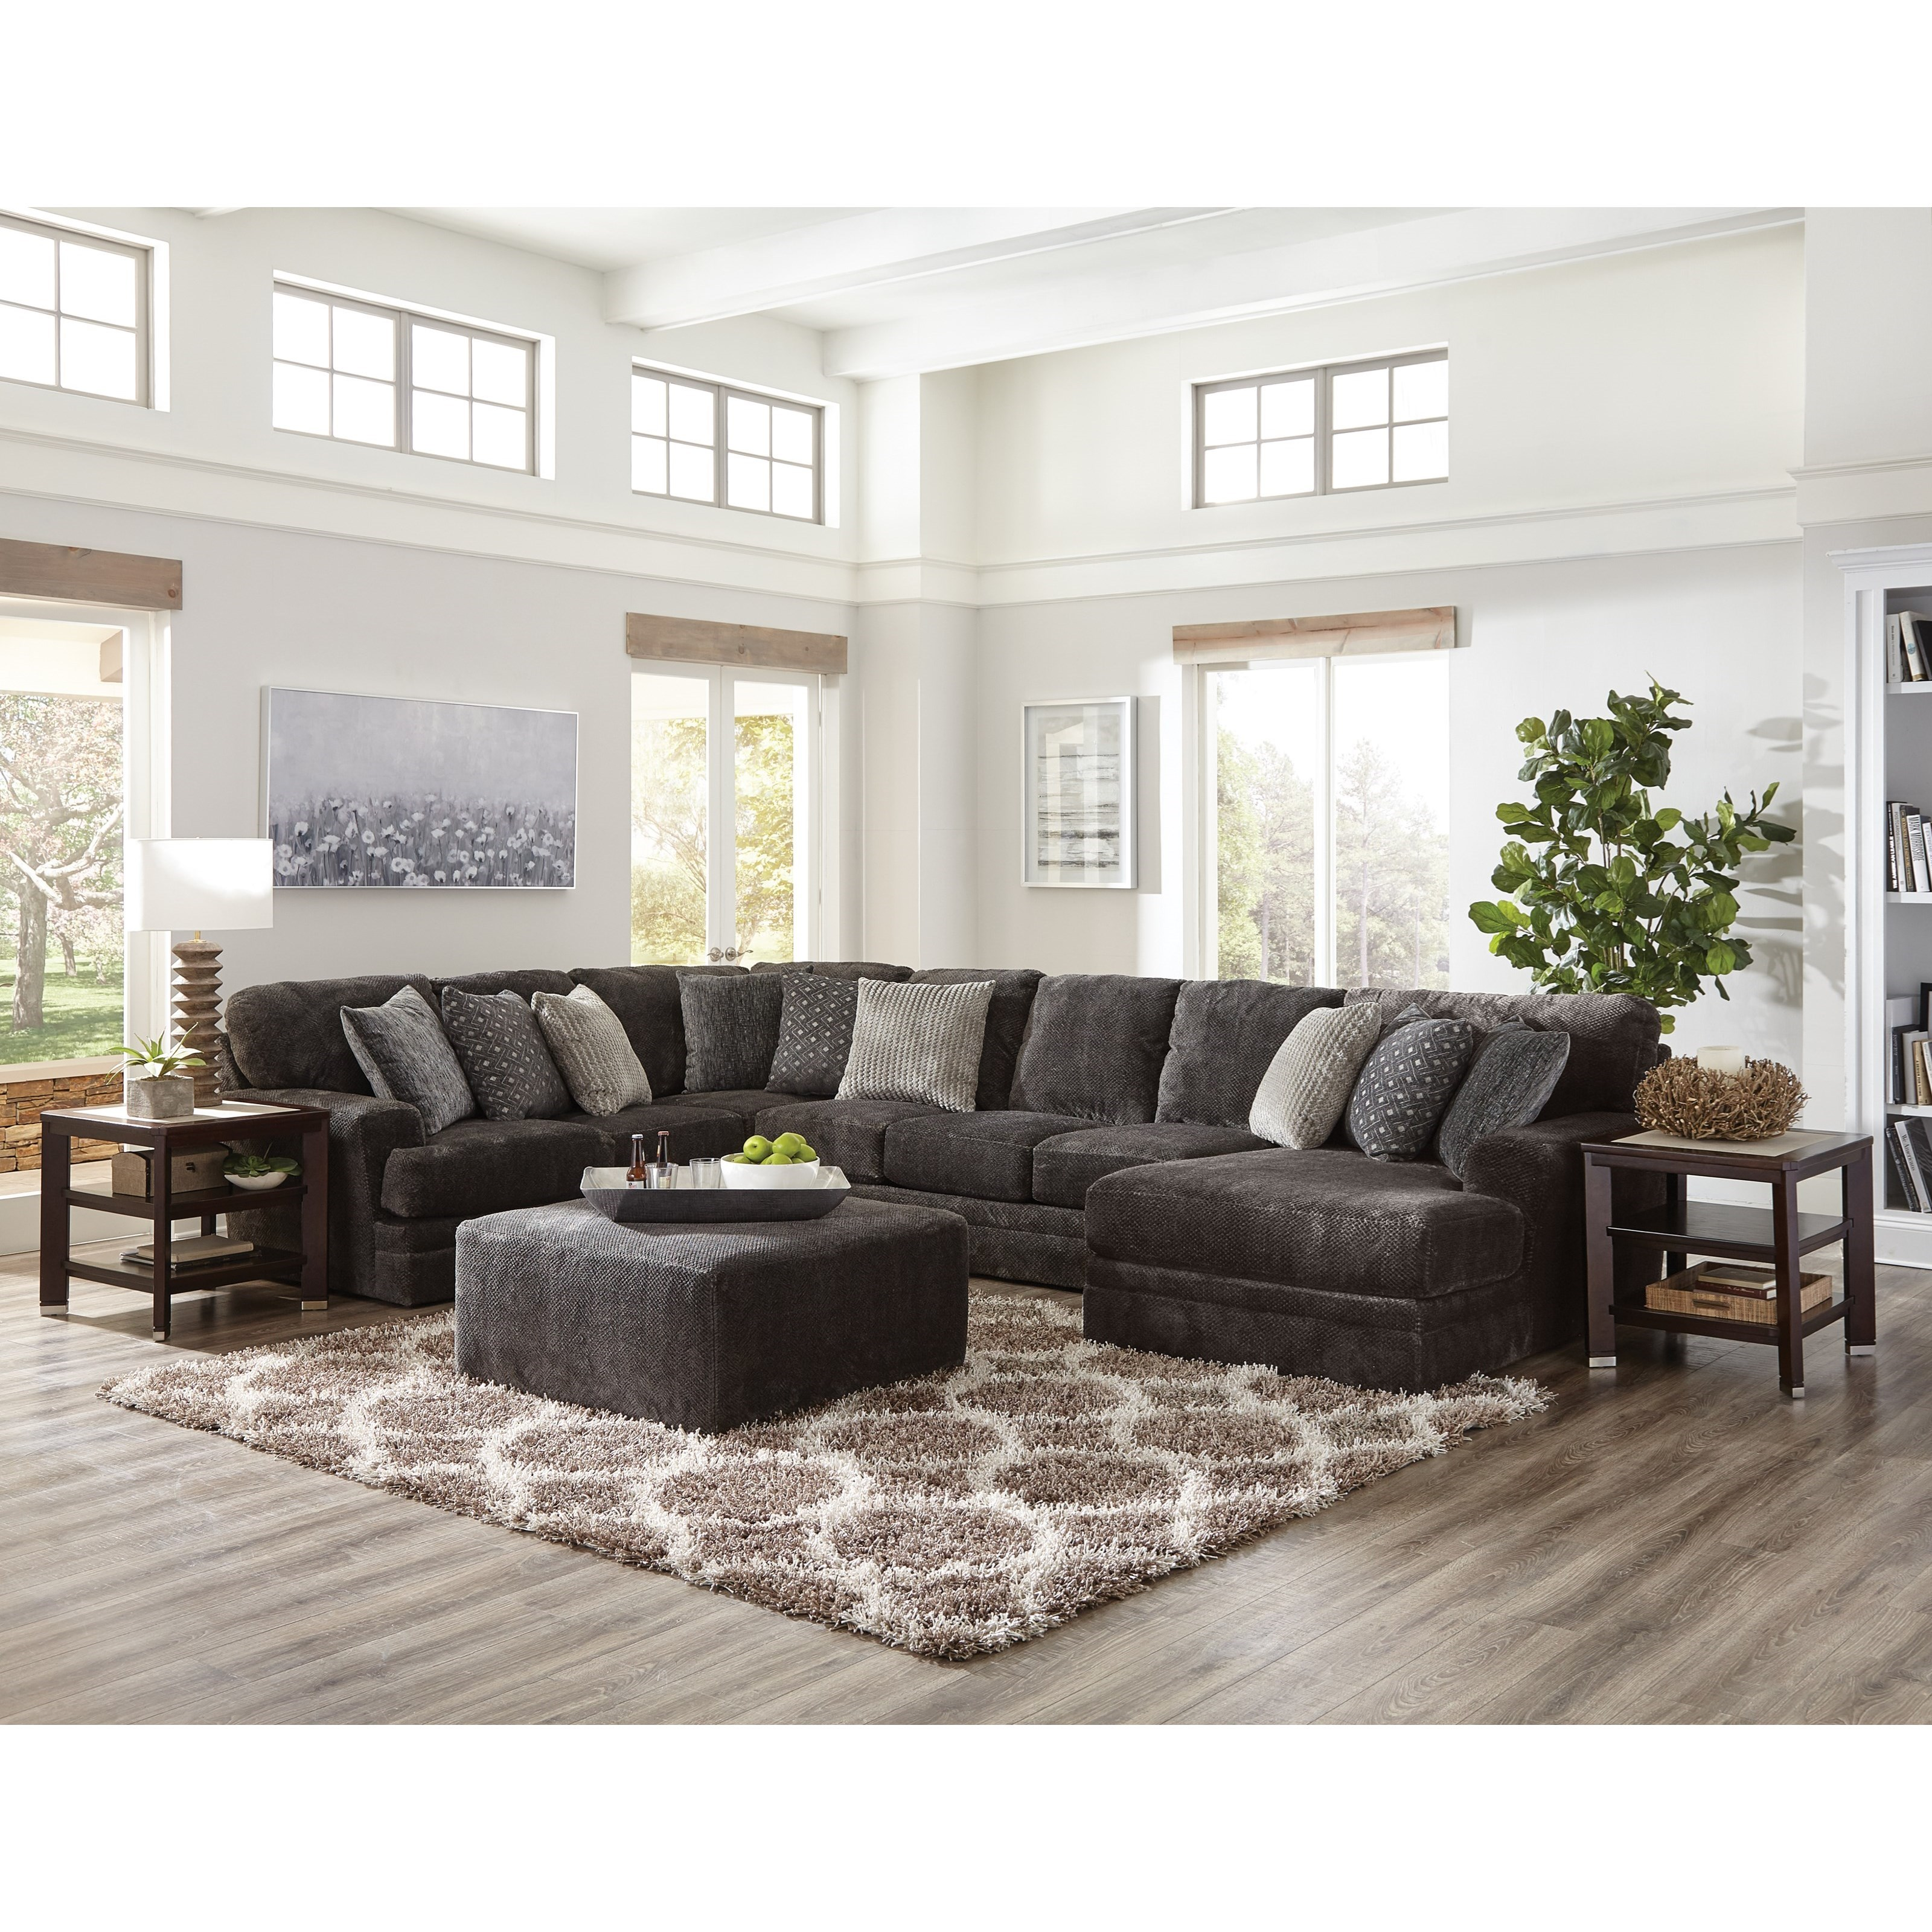 Jackson Furniture Mammoth Three Piece Sectional Sofa with Chaise